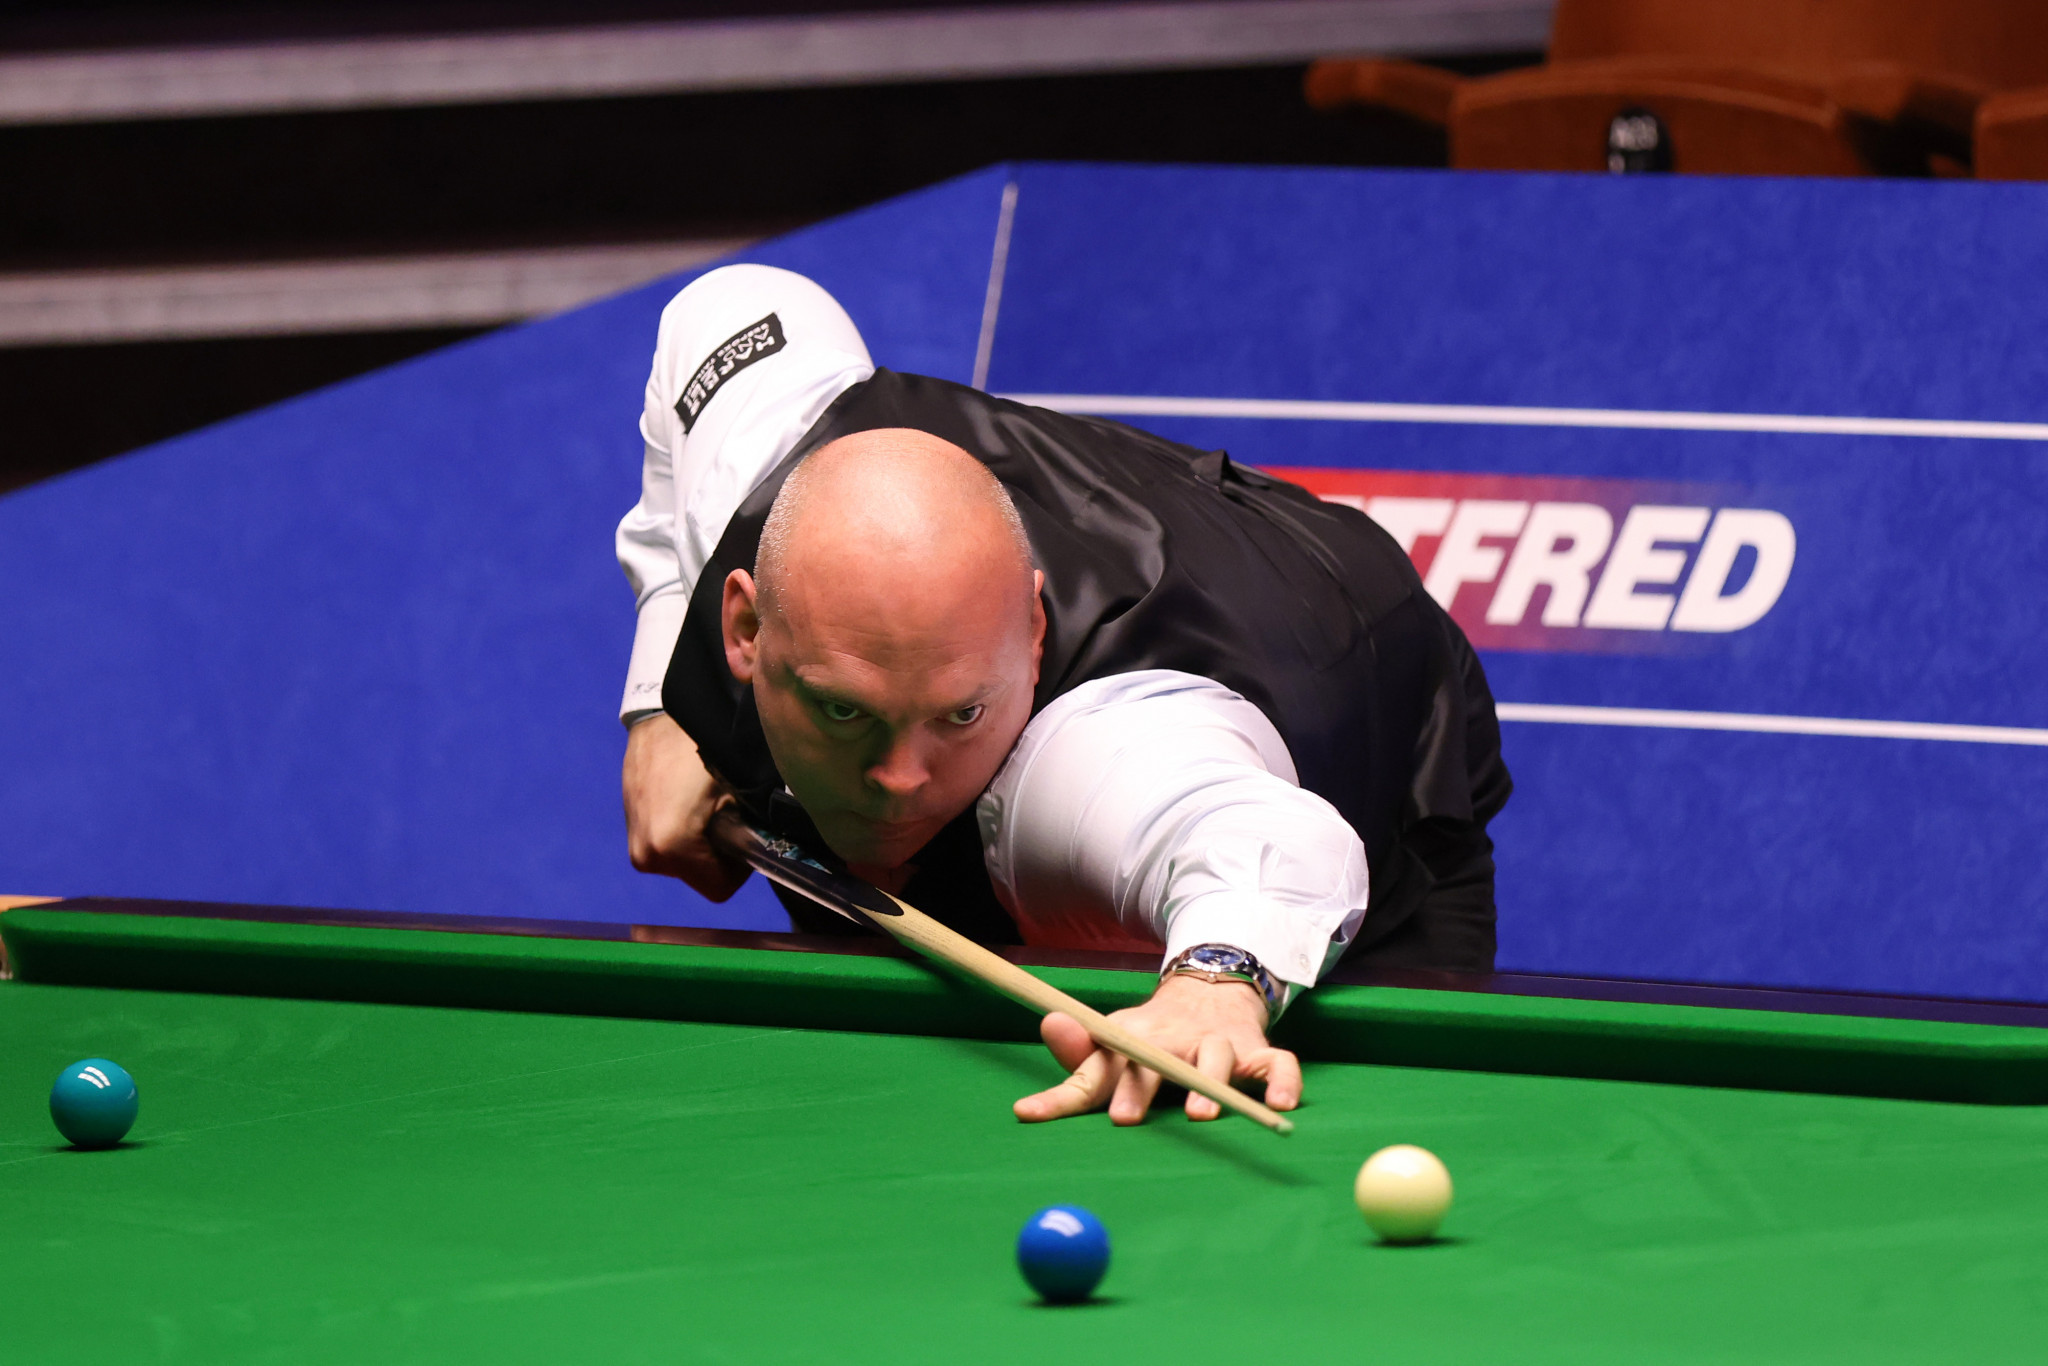 Bingham and Lisowski advance with last-frame wins at World Snooker Championship